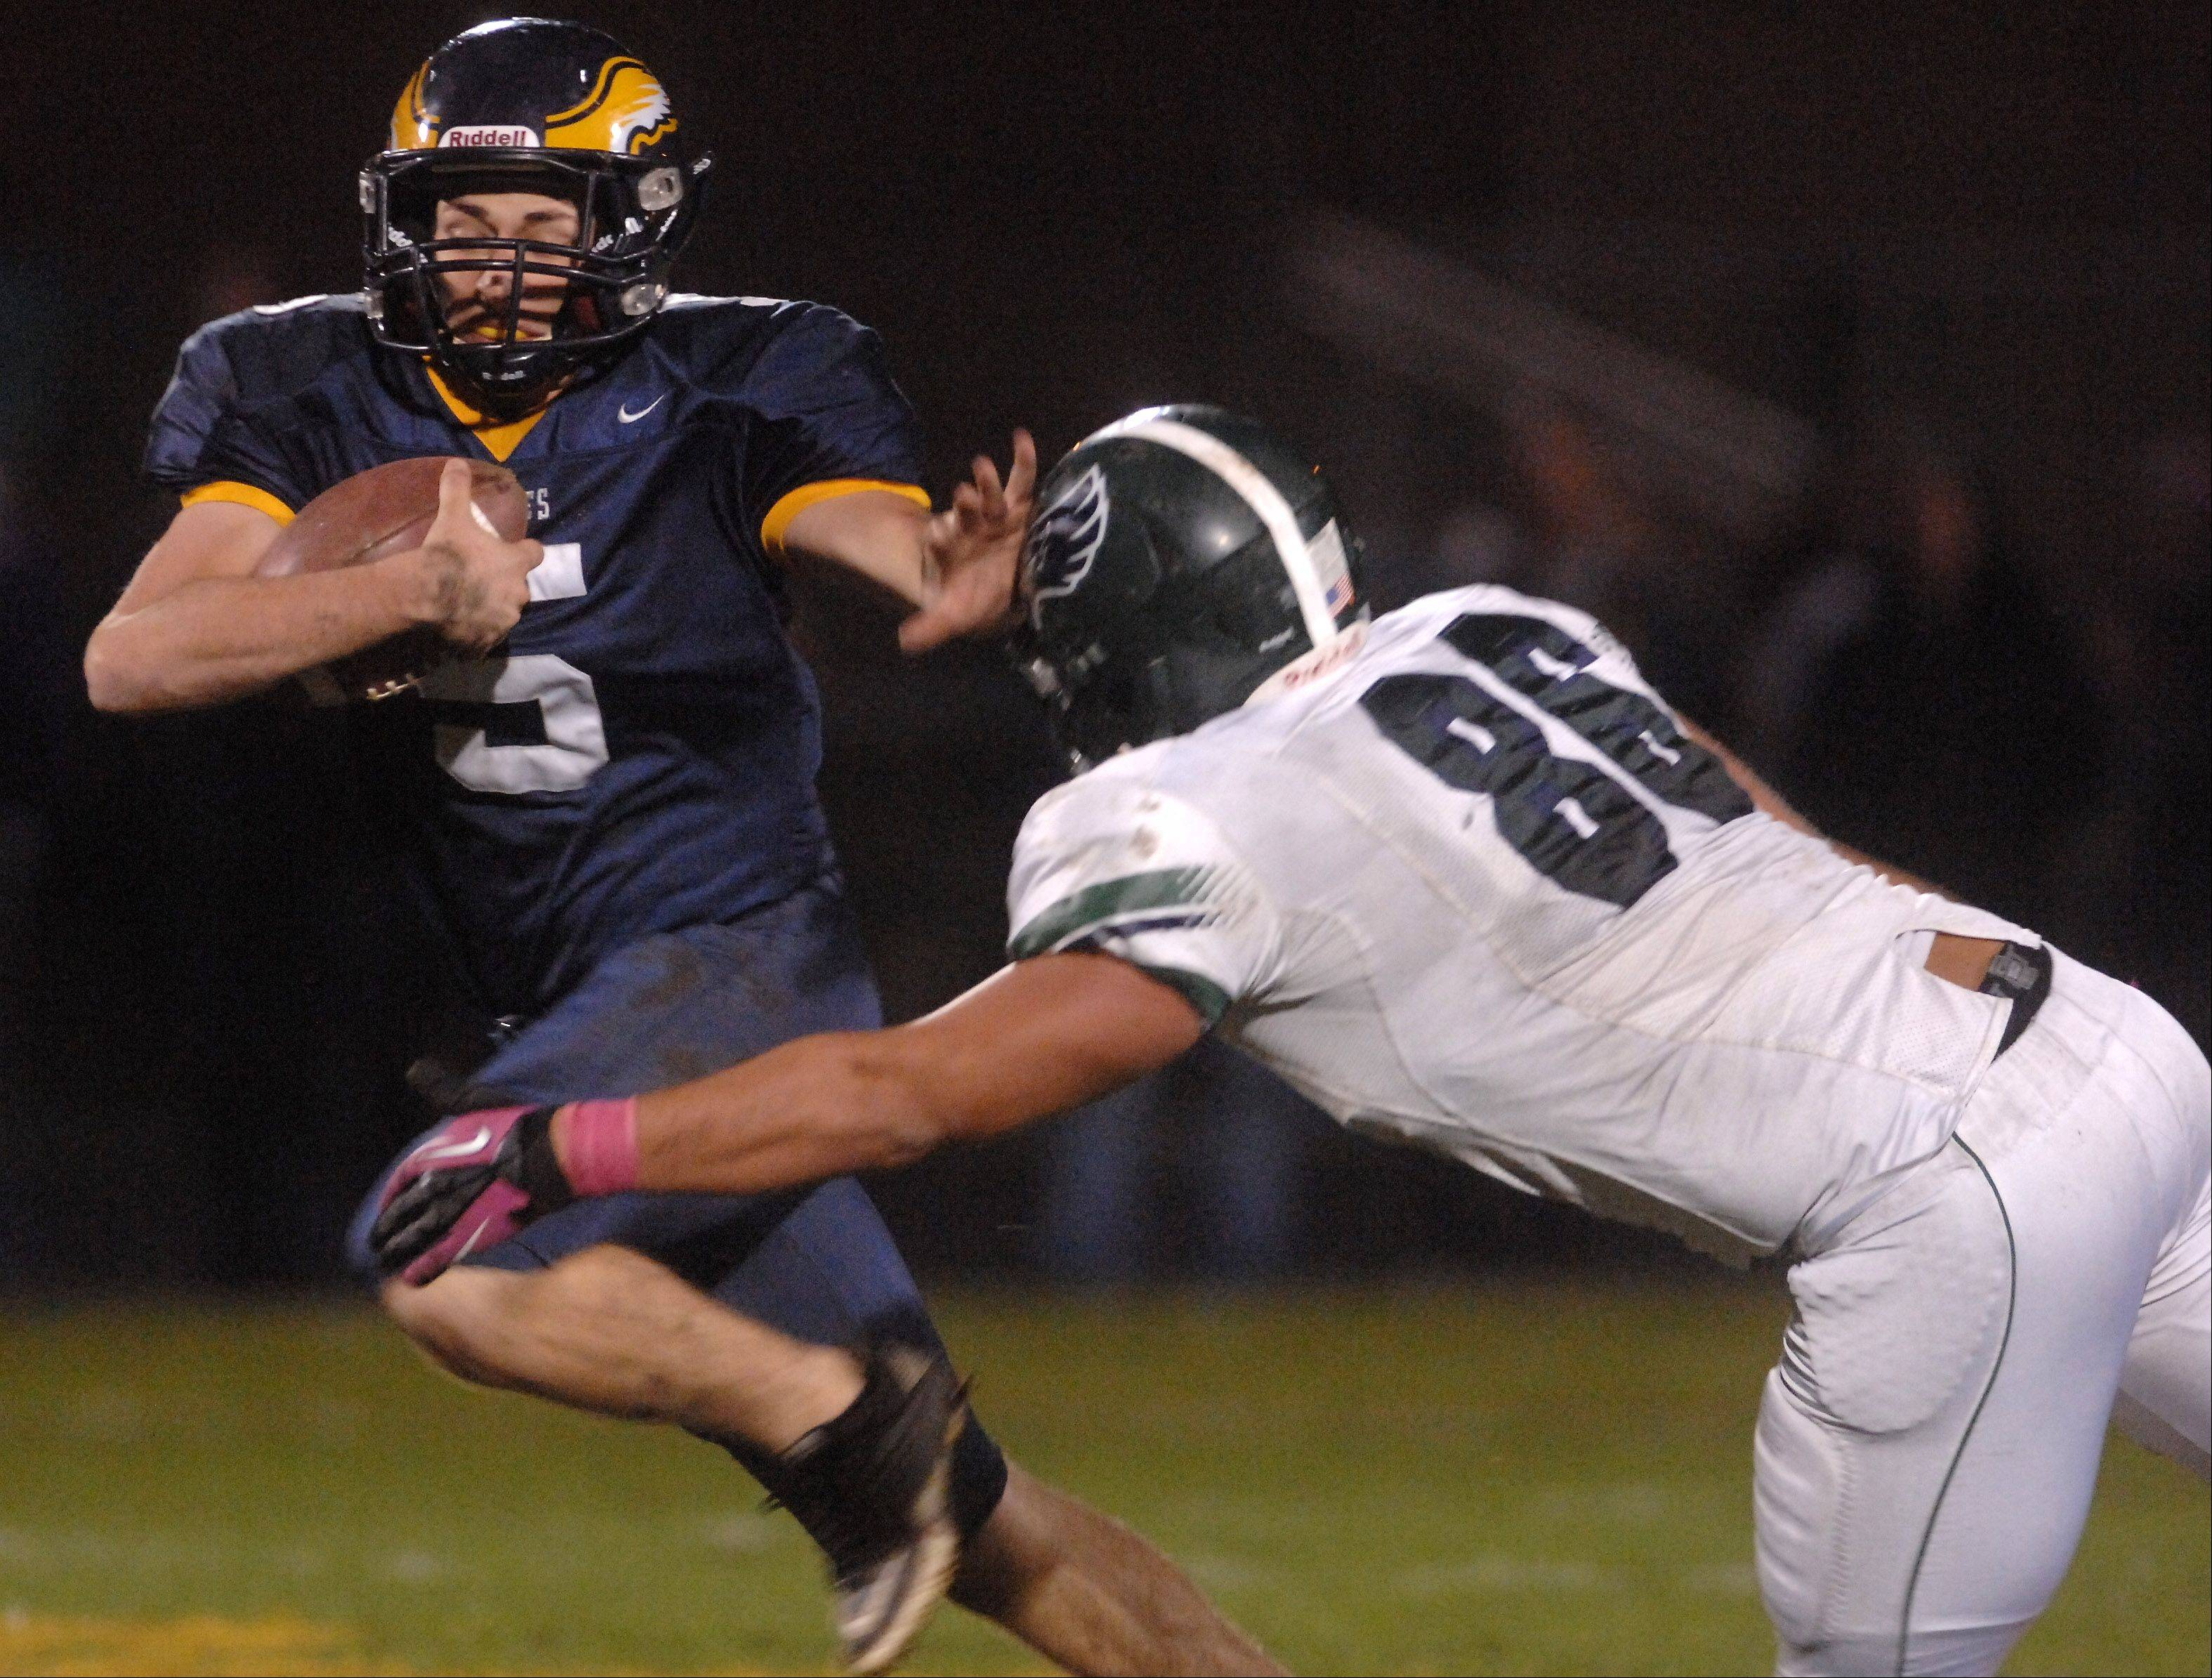 Leyden's Mike Smith (5) gives the stiff arm to Bartlett's Chris Kantzavelos (86) during Friday's game.